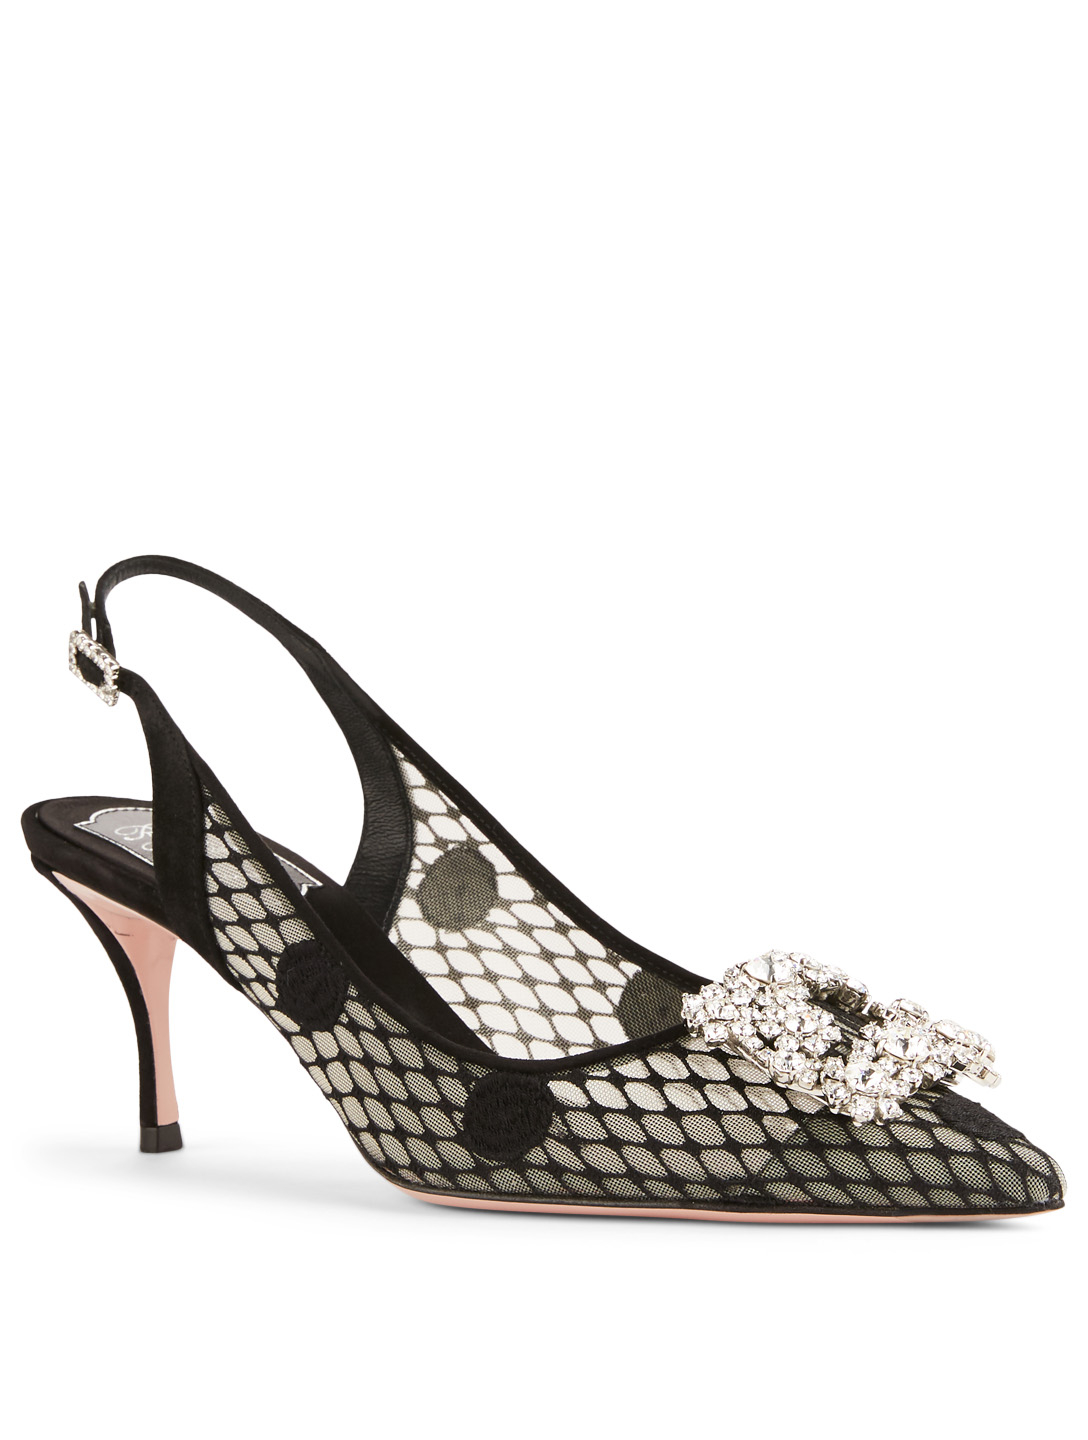 ROGER VIVIER Flower Strass Polka Dot Mesh Slingback Pumps Womens Black